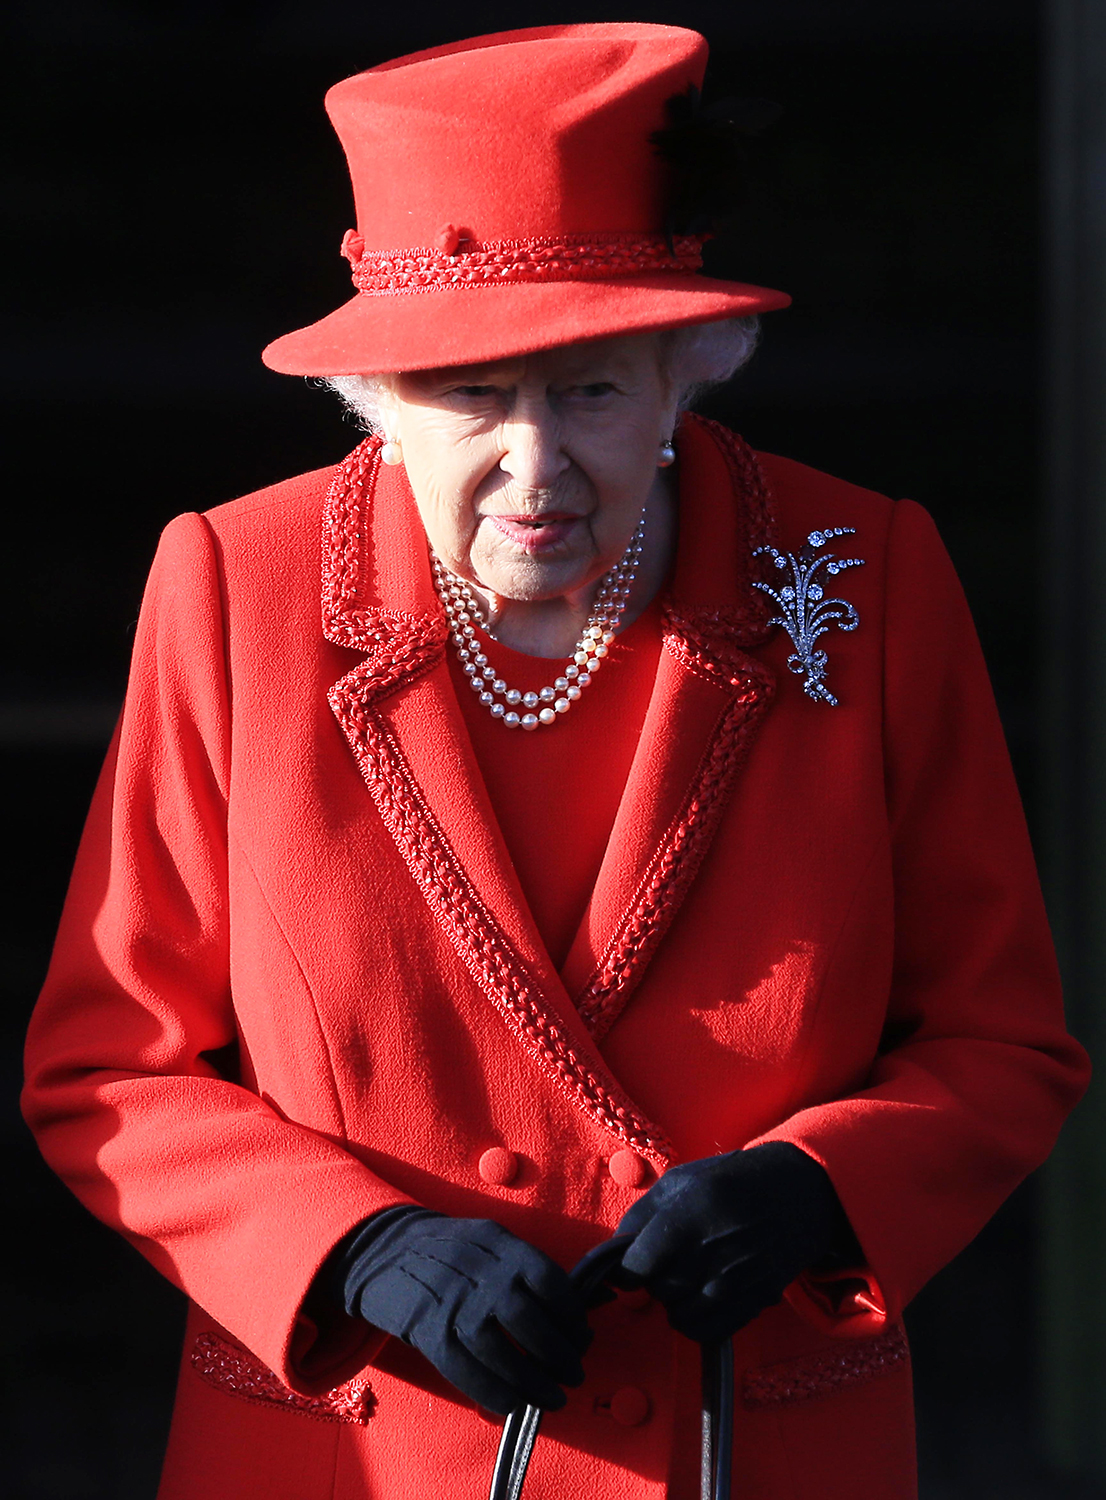 KING'S LYNN, ENGLAND - DECEMBER 25: Queen Elizabeth II leaves after attending the Christmas Day Church service at Church of St Mary Magdalene on the Sandringham estate on December 25, 2019 in King's Lynn, United Kingdom. (Photo by Stephen Pond/Getty Images)